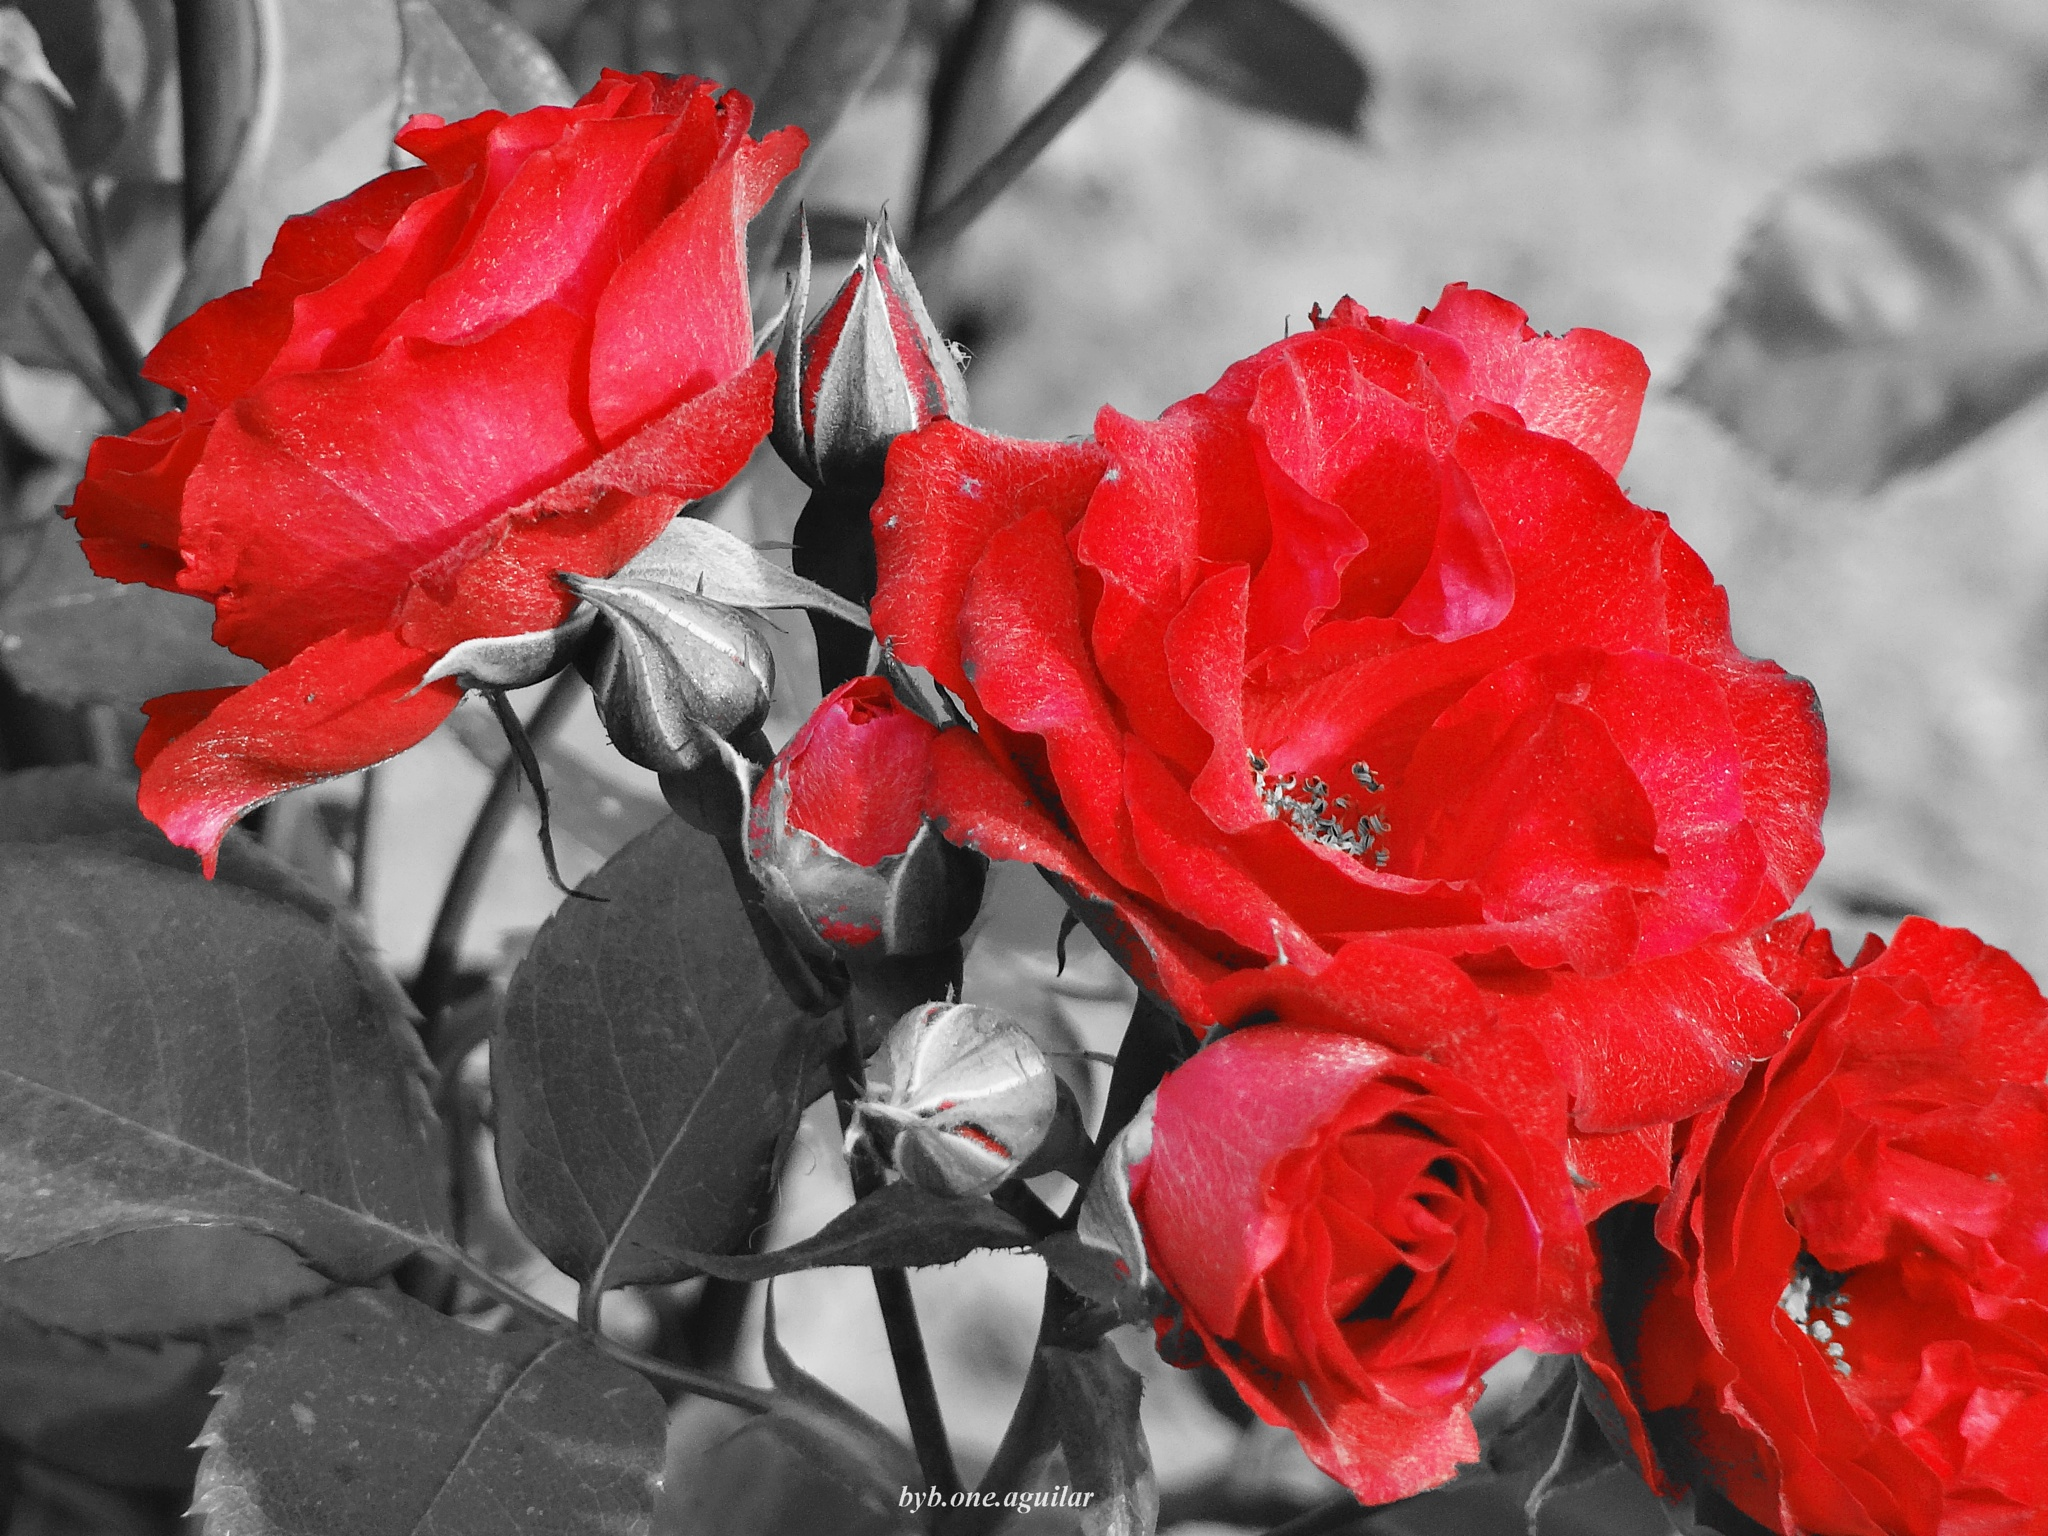 Rosas by Byb.One_Aguilar